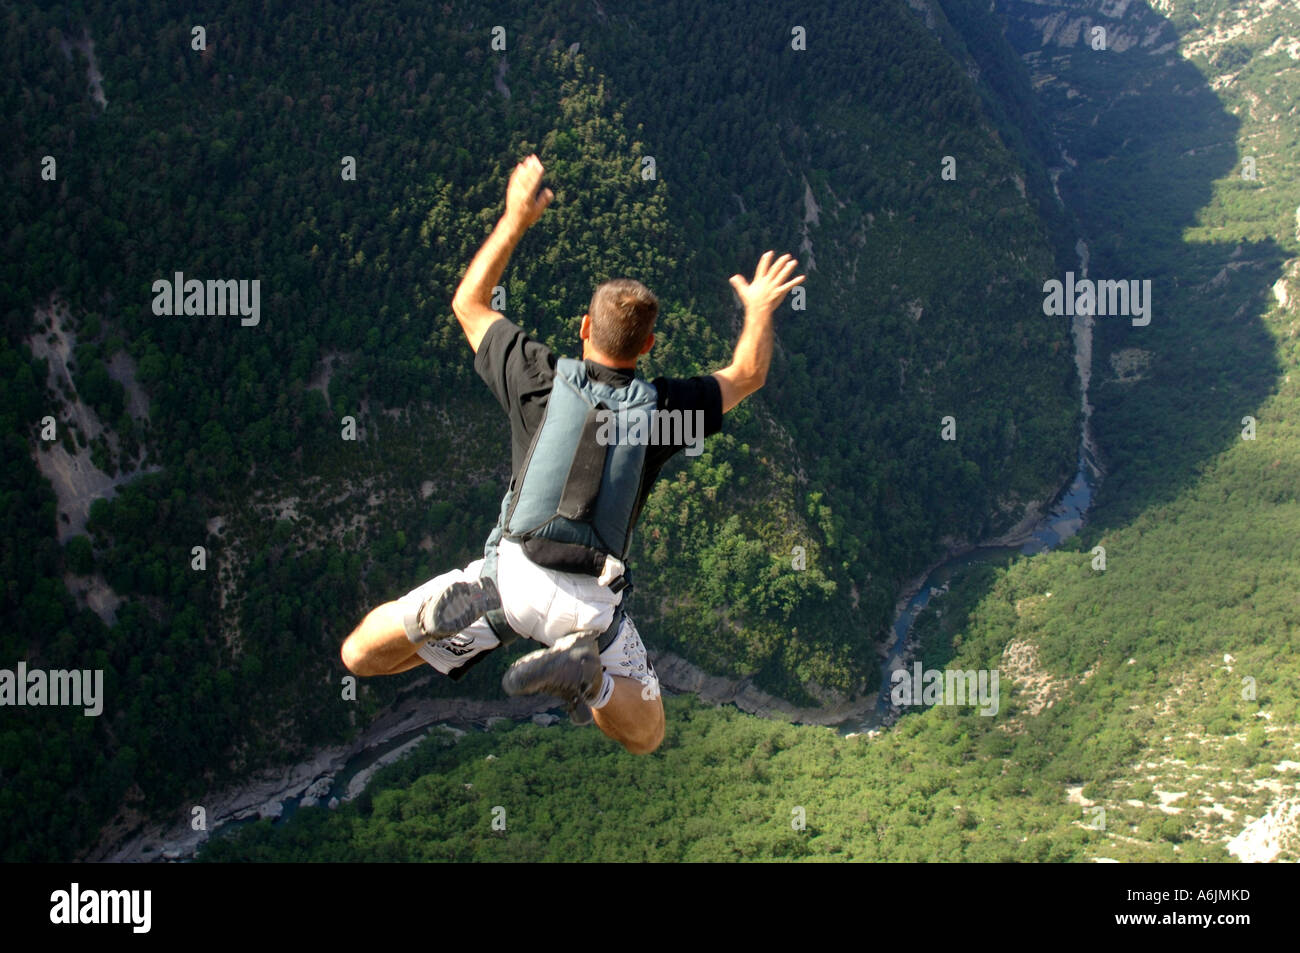 basejump in the french alps, France - Stock Image